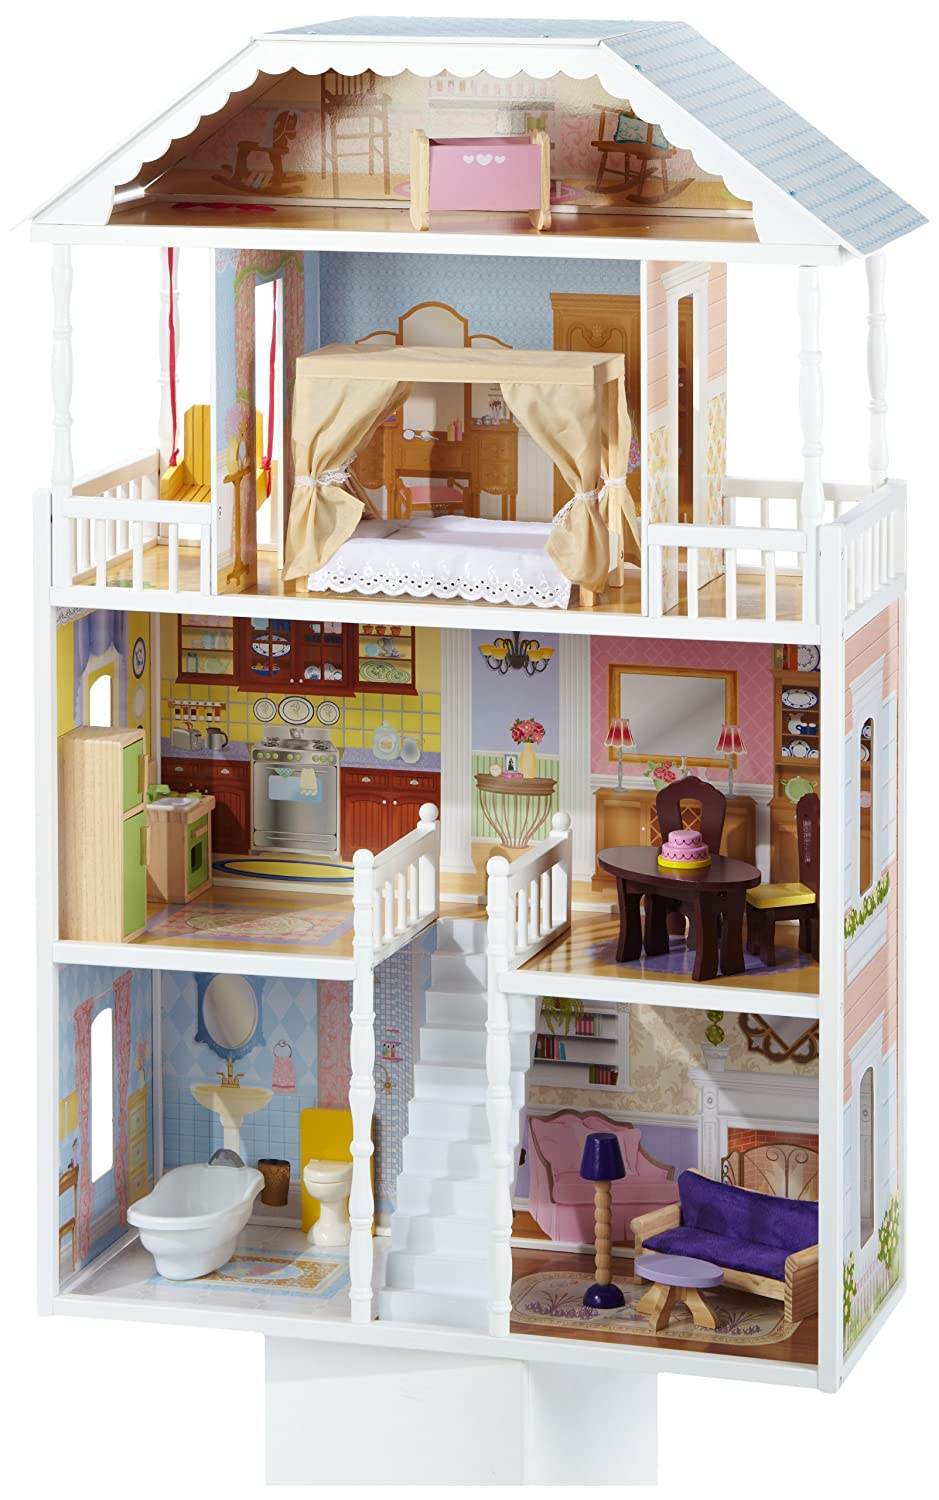 Kidkraft savannah dollhouse with furniture review - Maison poupee kidkraft ...